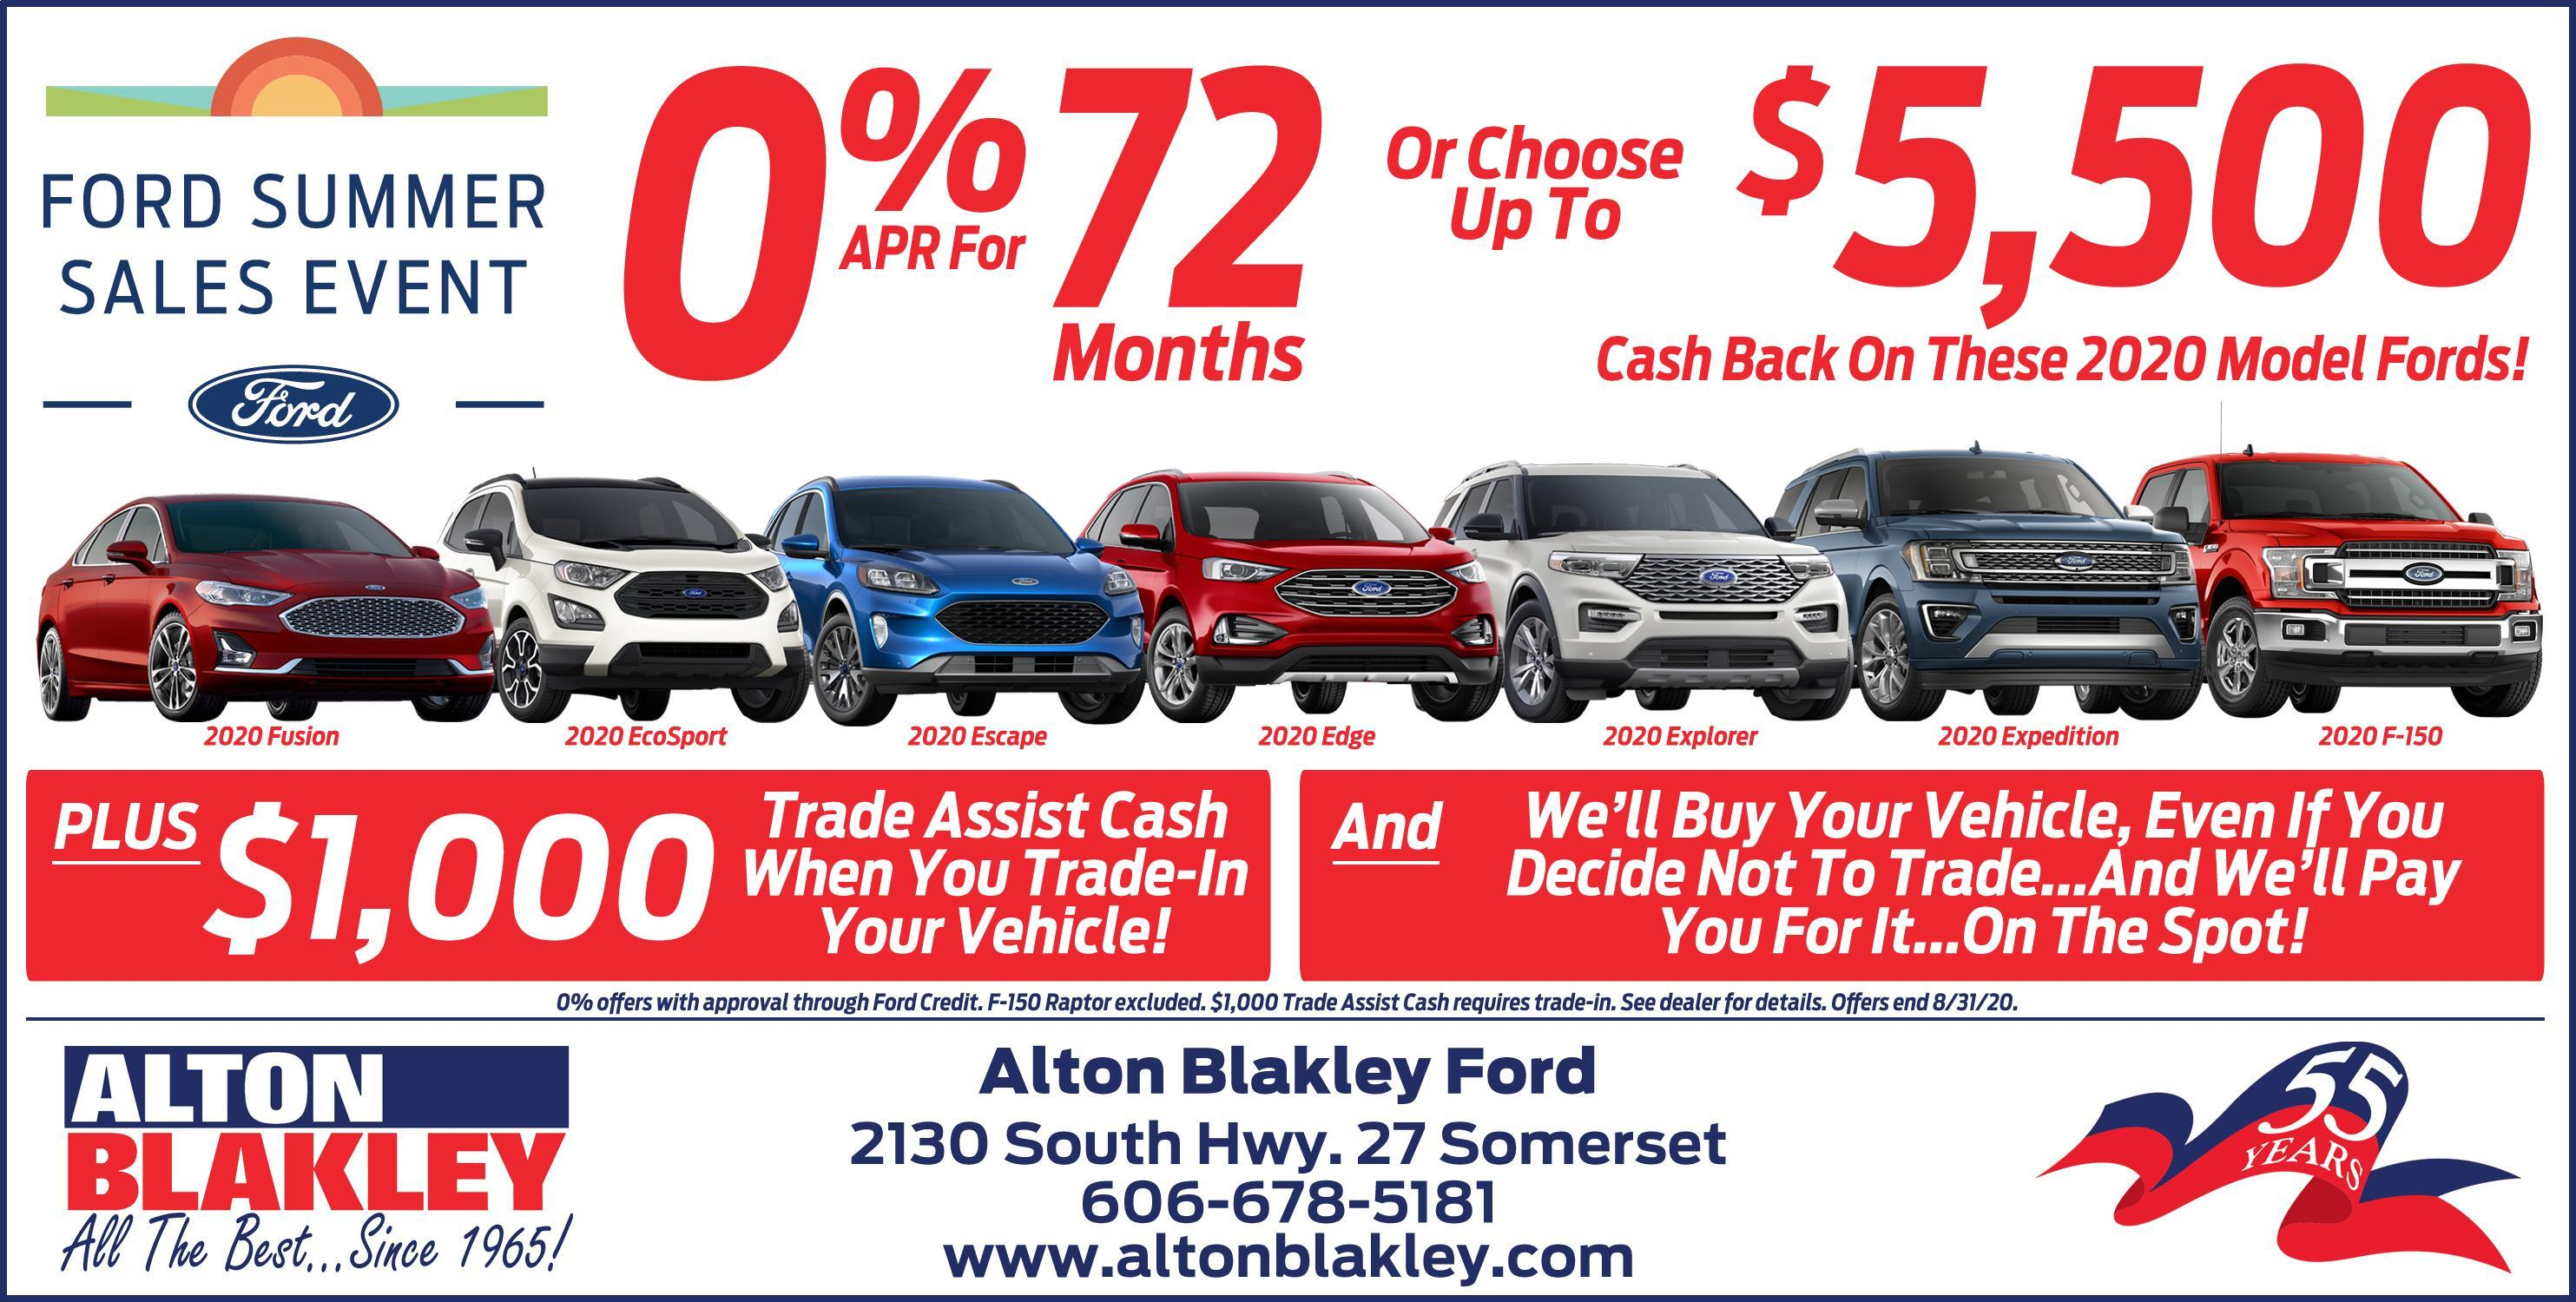 commonwealth journal newspaper ads classifieds automotive vehicles alton blakley ford vehicles alton blakley ford